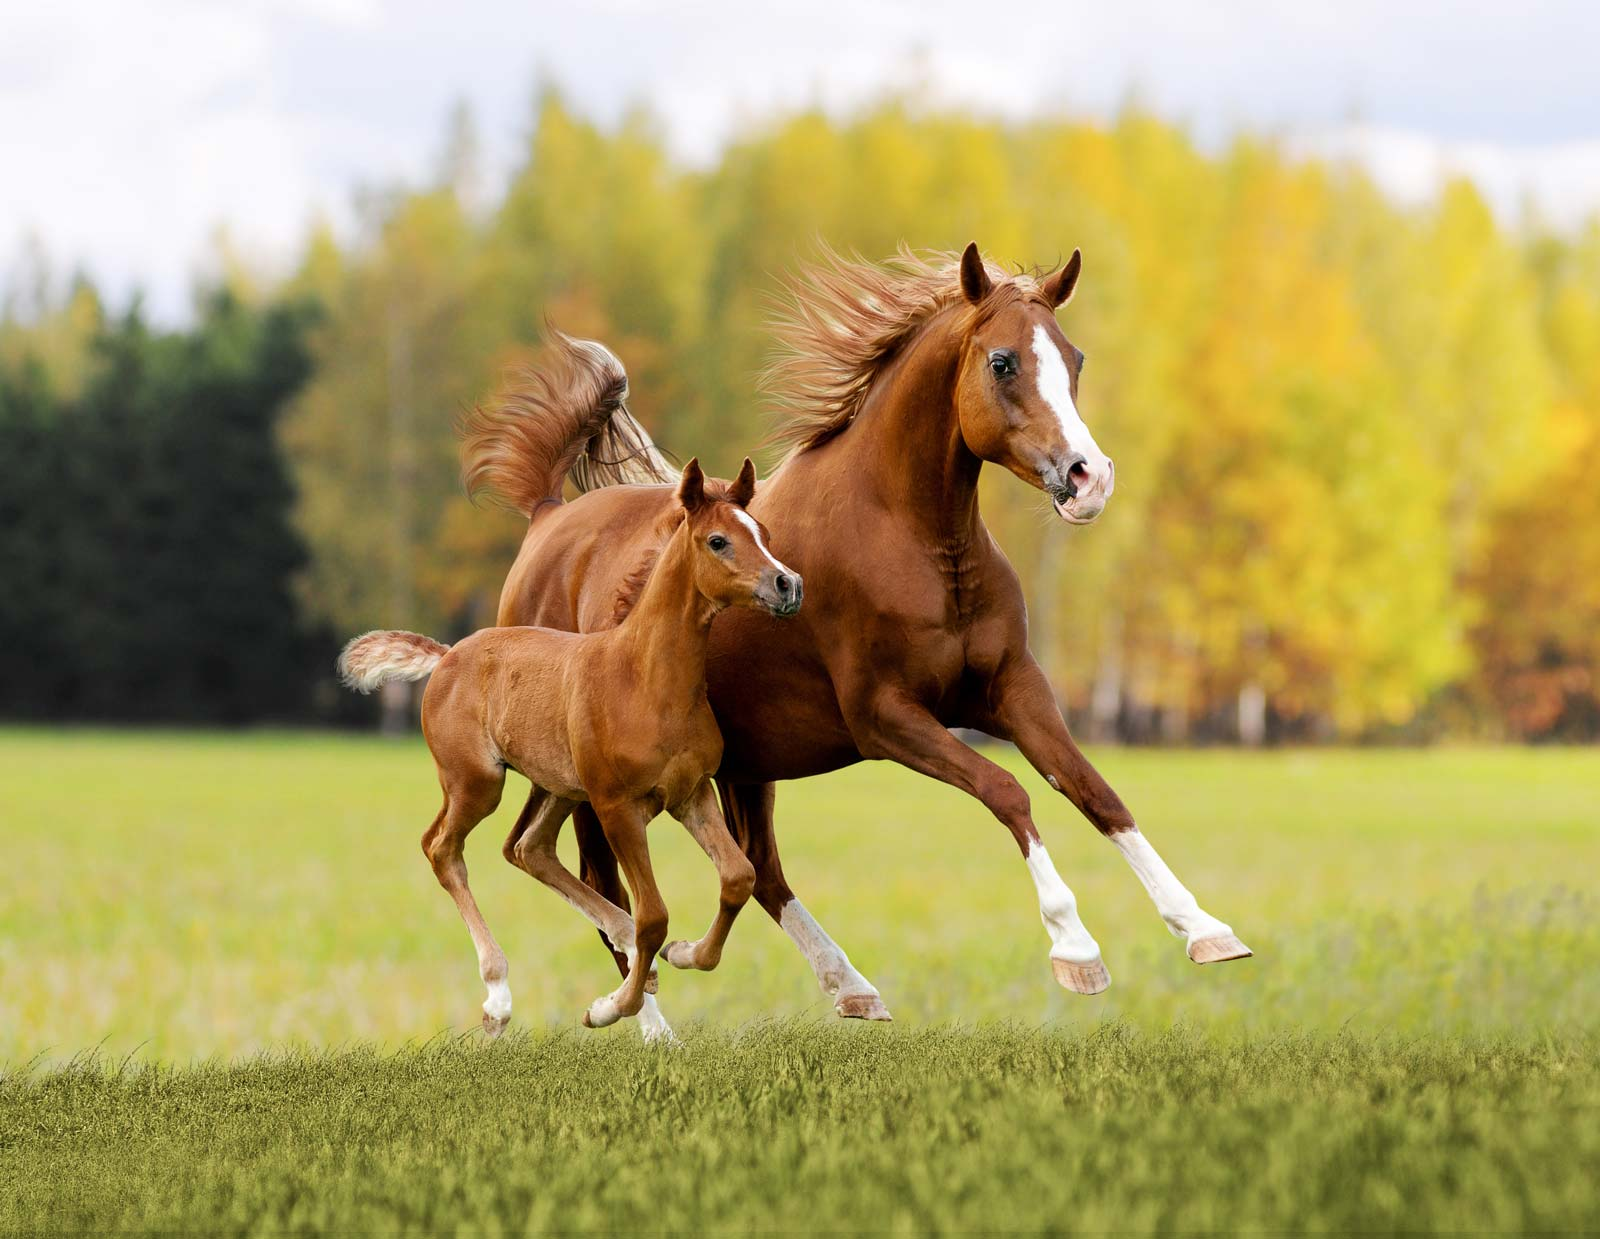 equine veterinary clinic medication articles